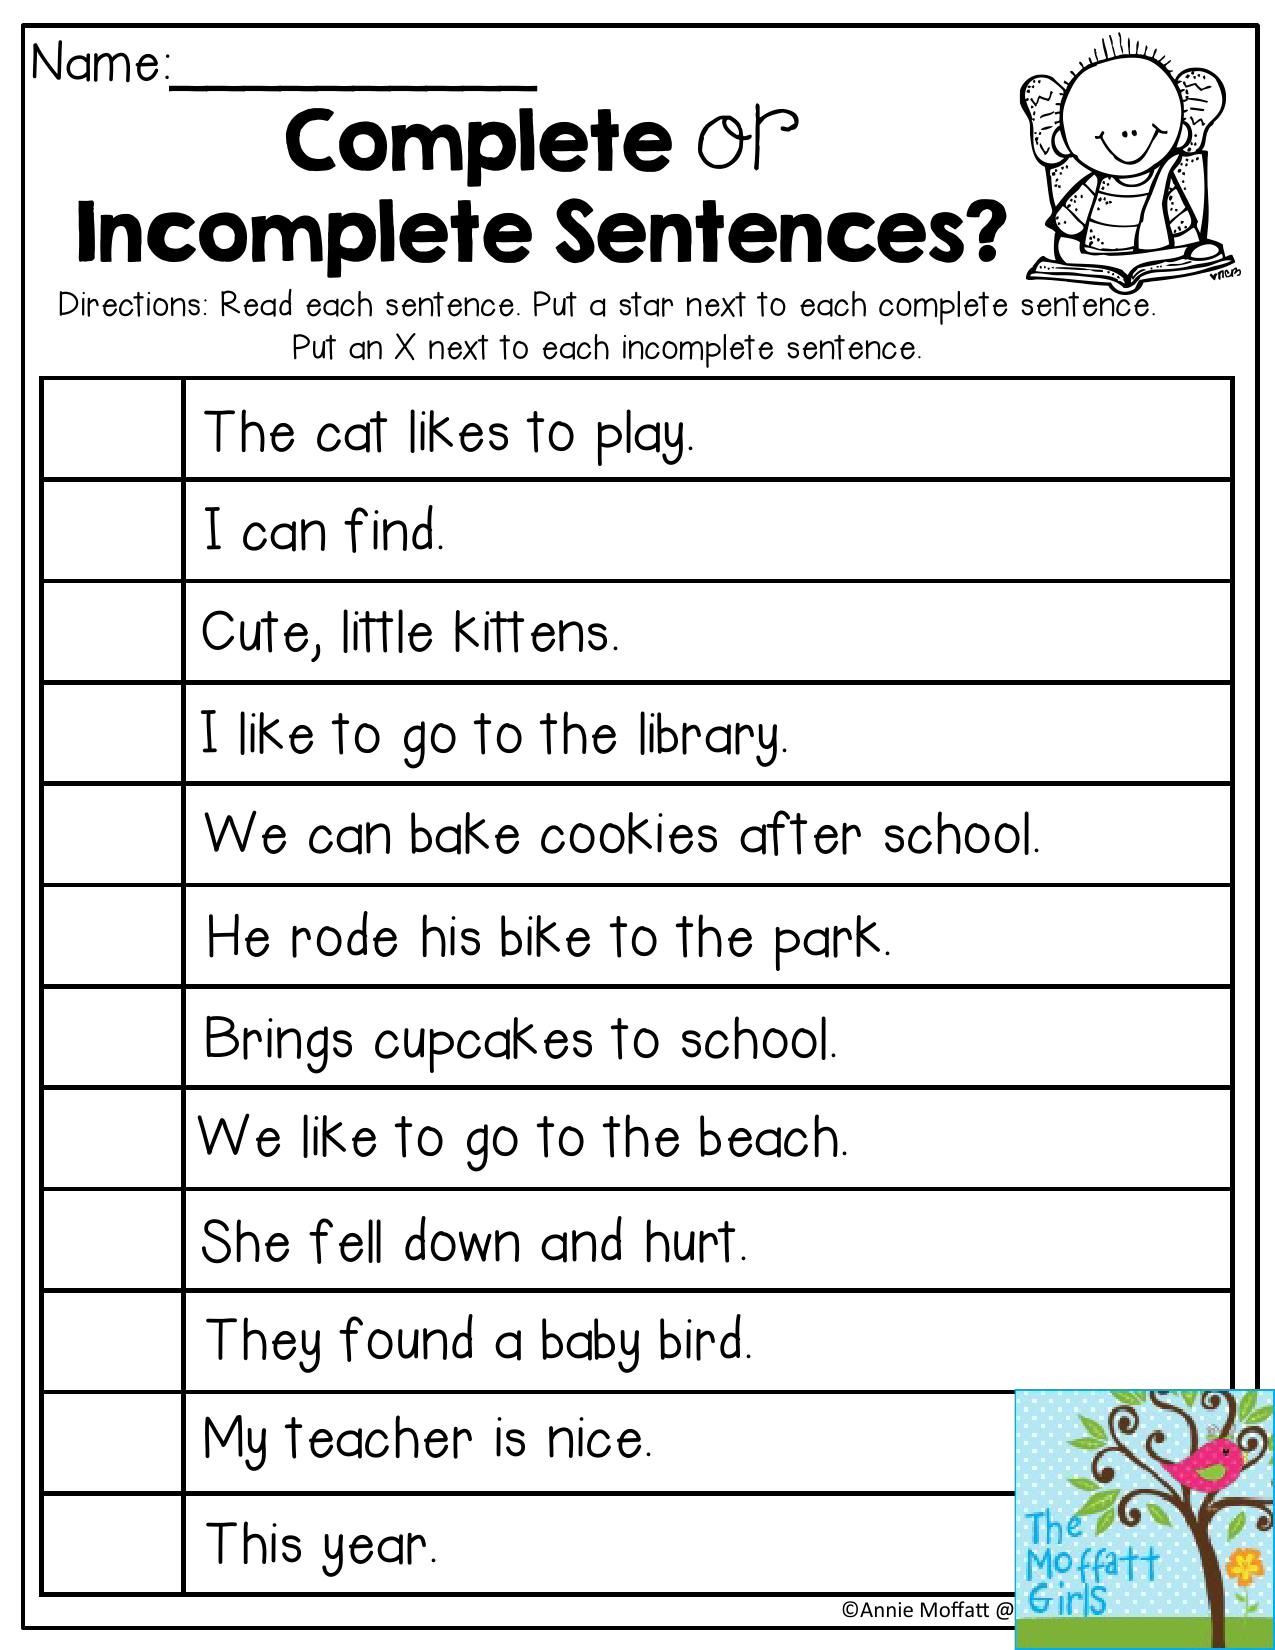 Complete Sentences Worksheets 3rd Grade Plete or In Plete Sentences Read Each Sentence and